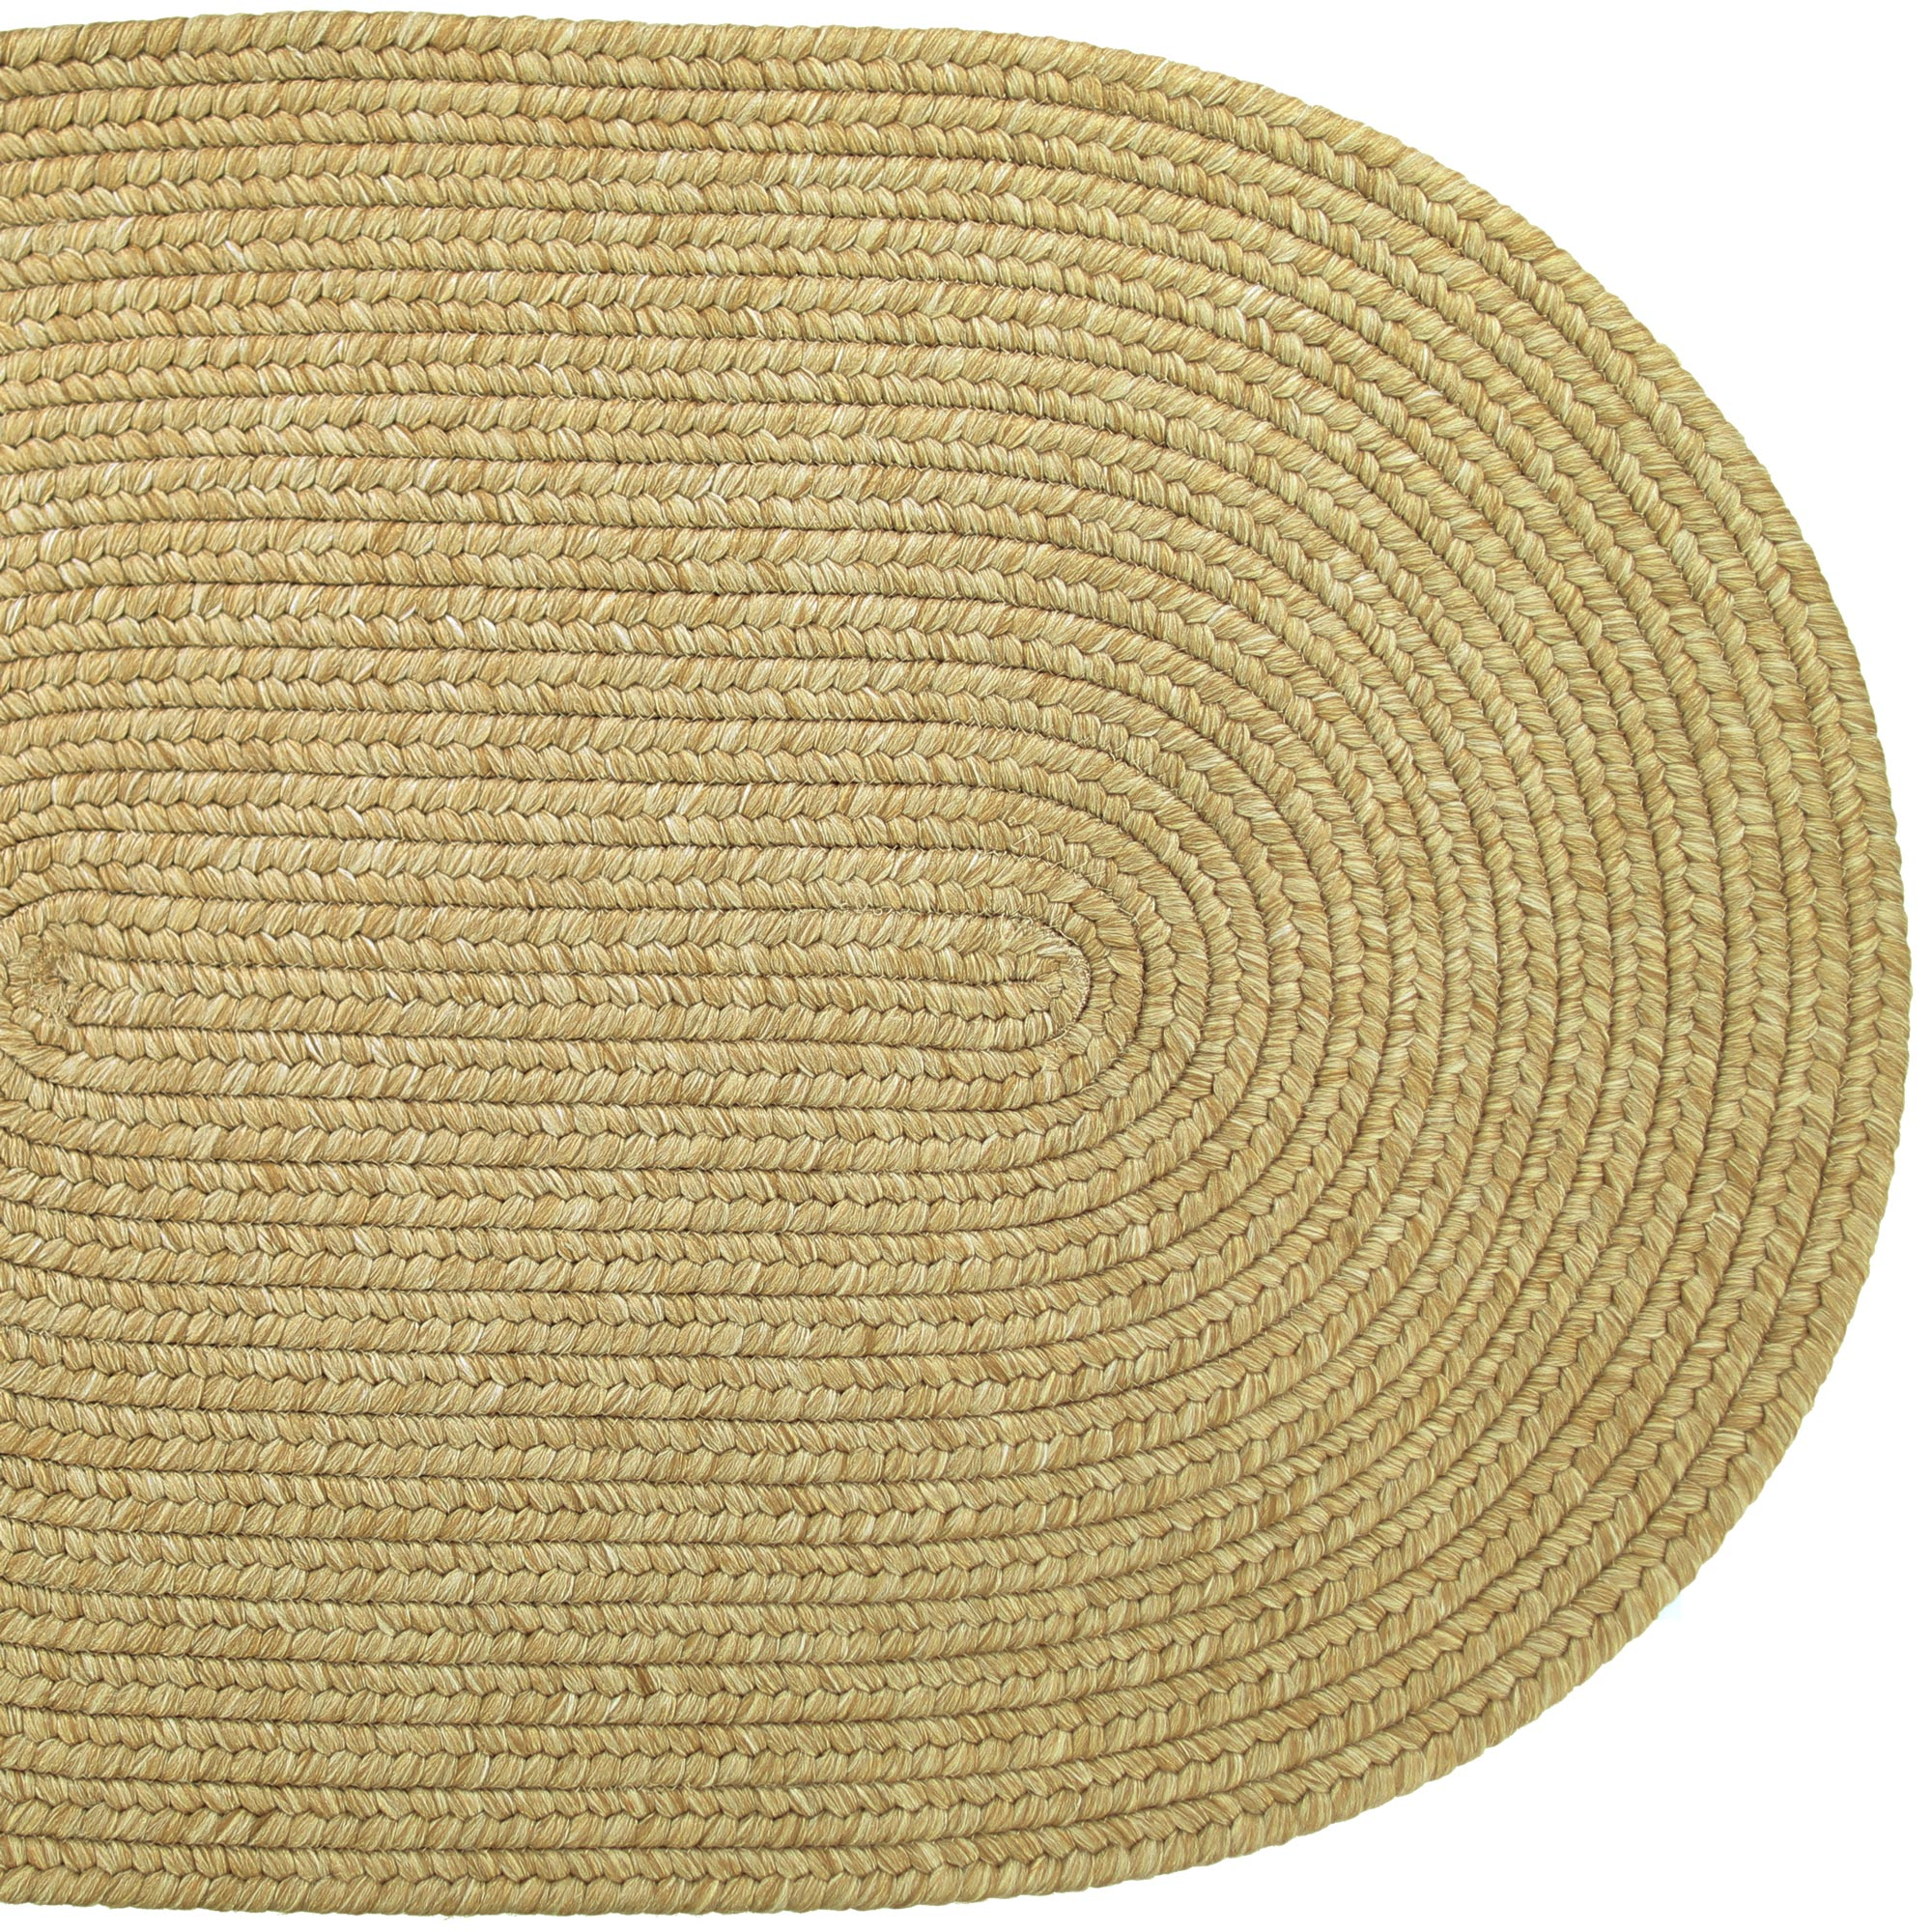 Solid Braided Area Rugs Indoor Outdoor Oval Rectangle